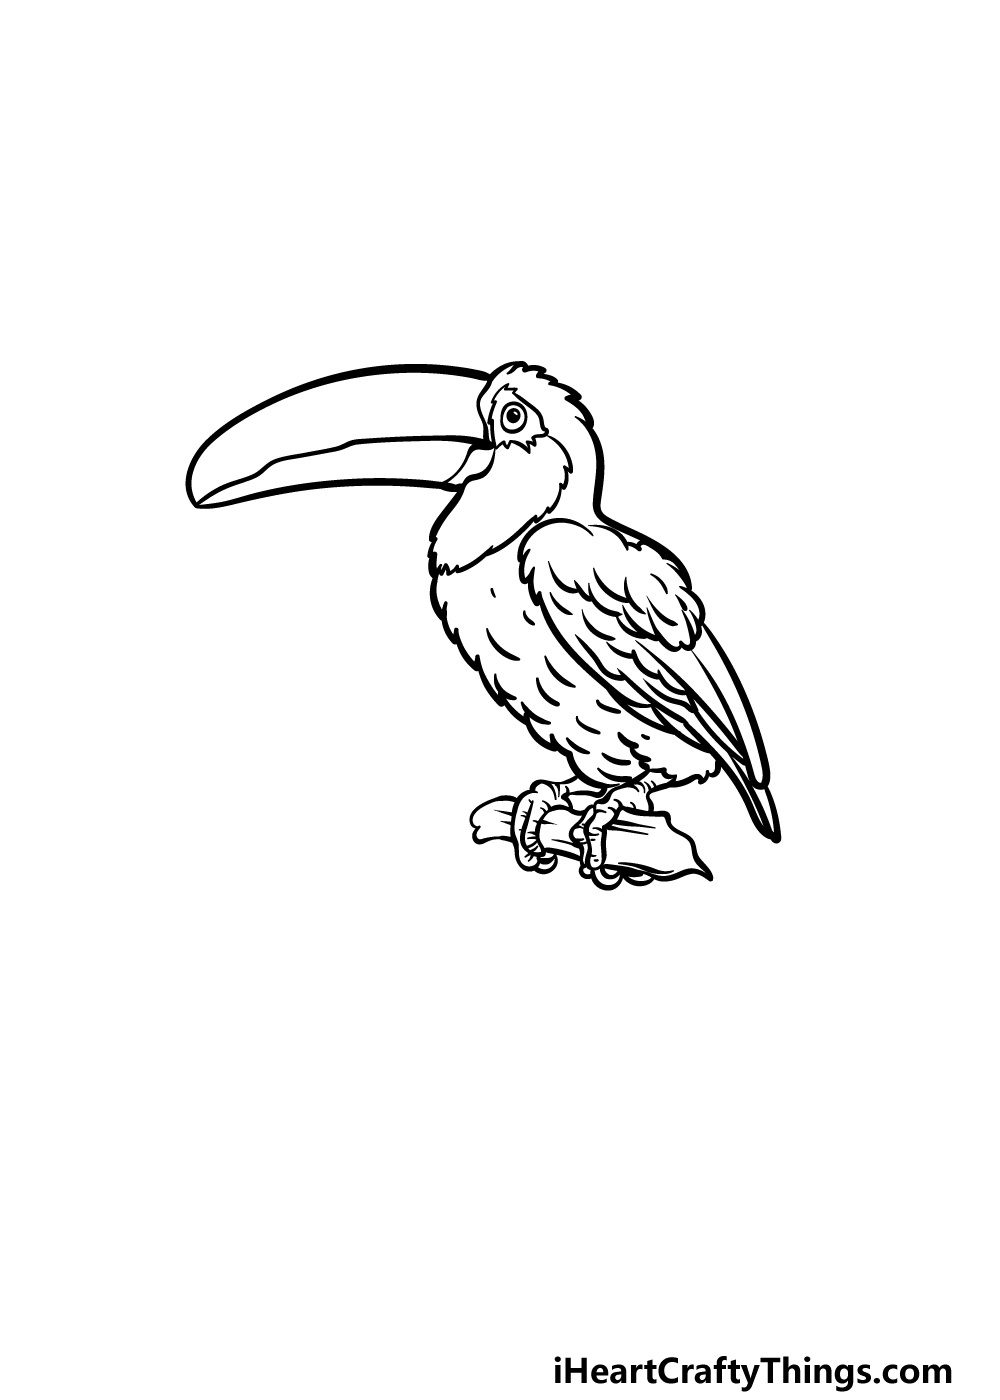 drawing a toucan step 4